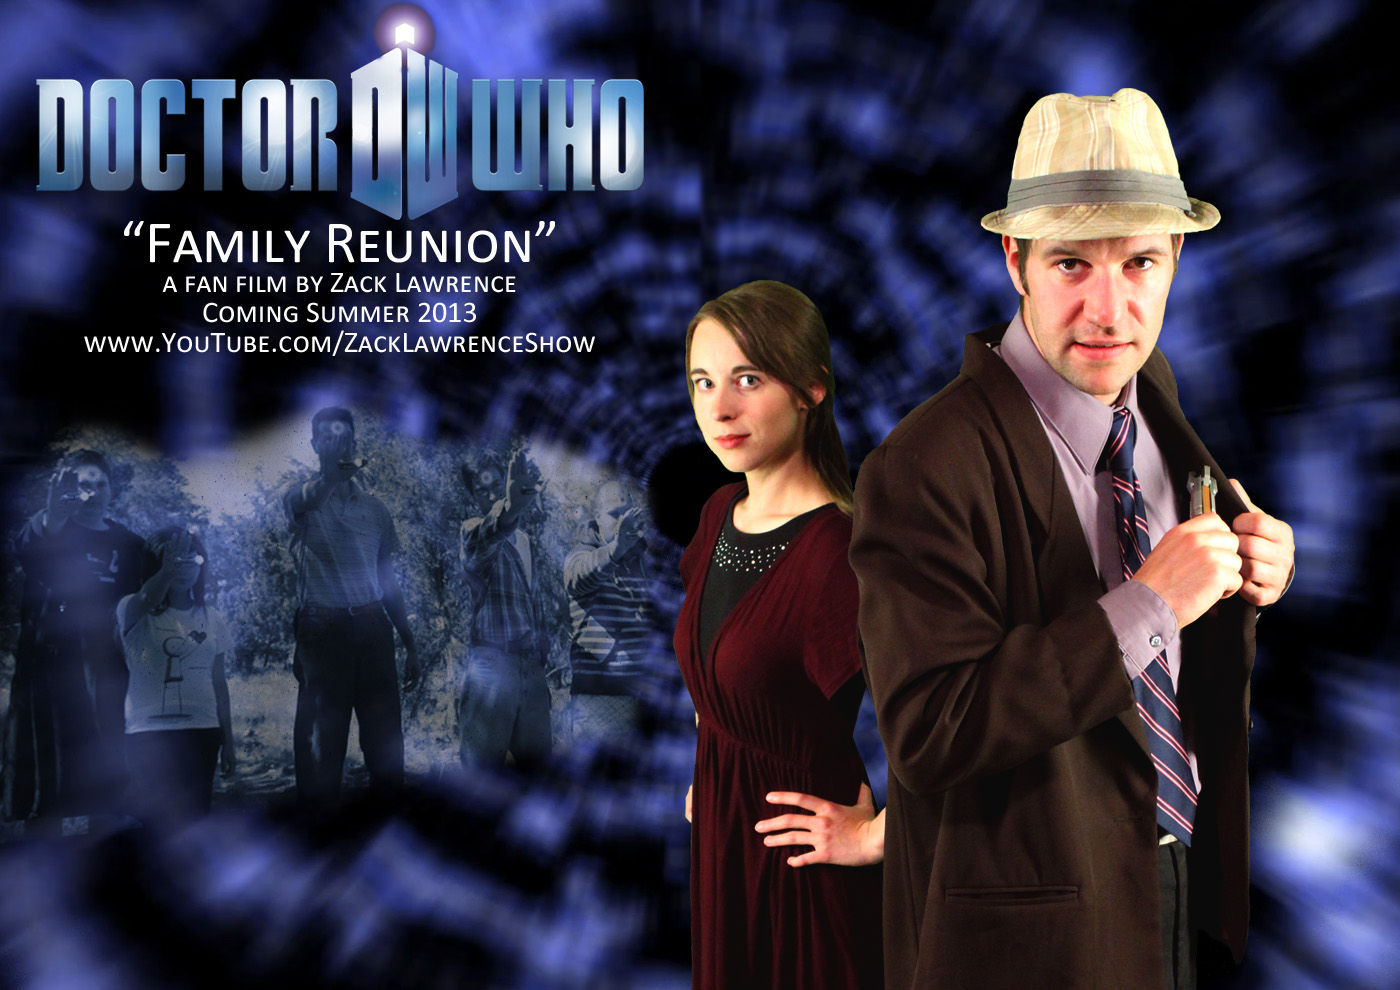 Doctor Who: Family Reunion (Fan film)